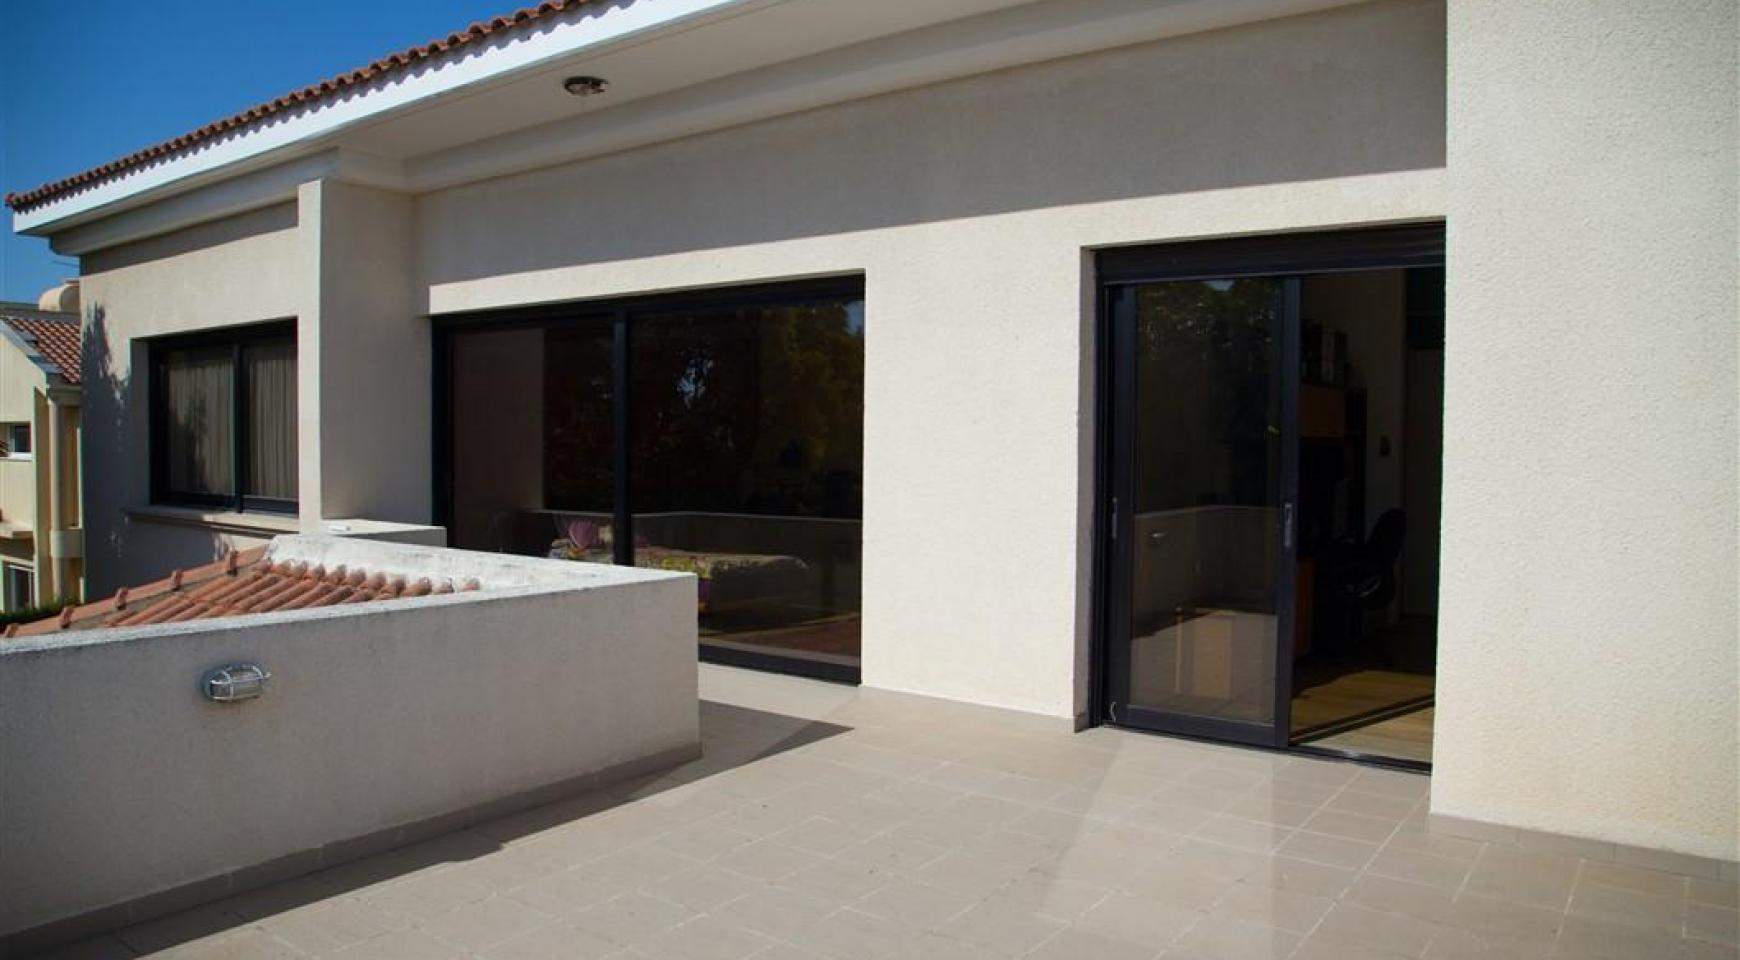 4 Bedroom Villa in Germasogeia Area - 9